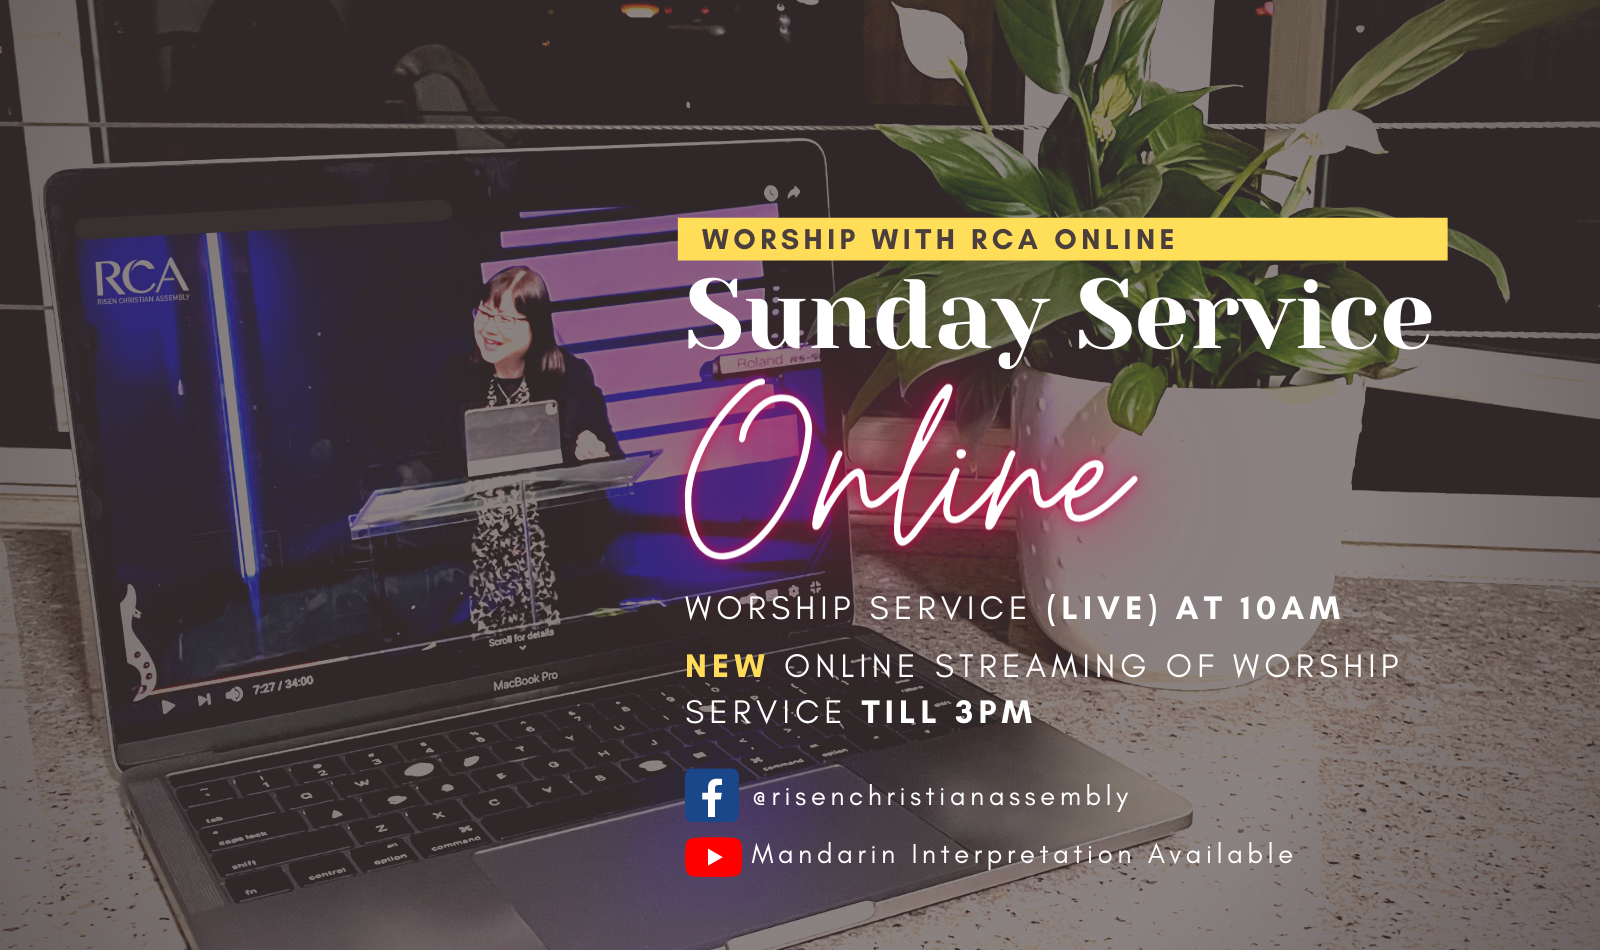 Worship Jesus with RCA at our online service on Sundays.